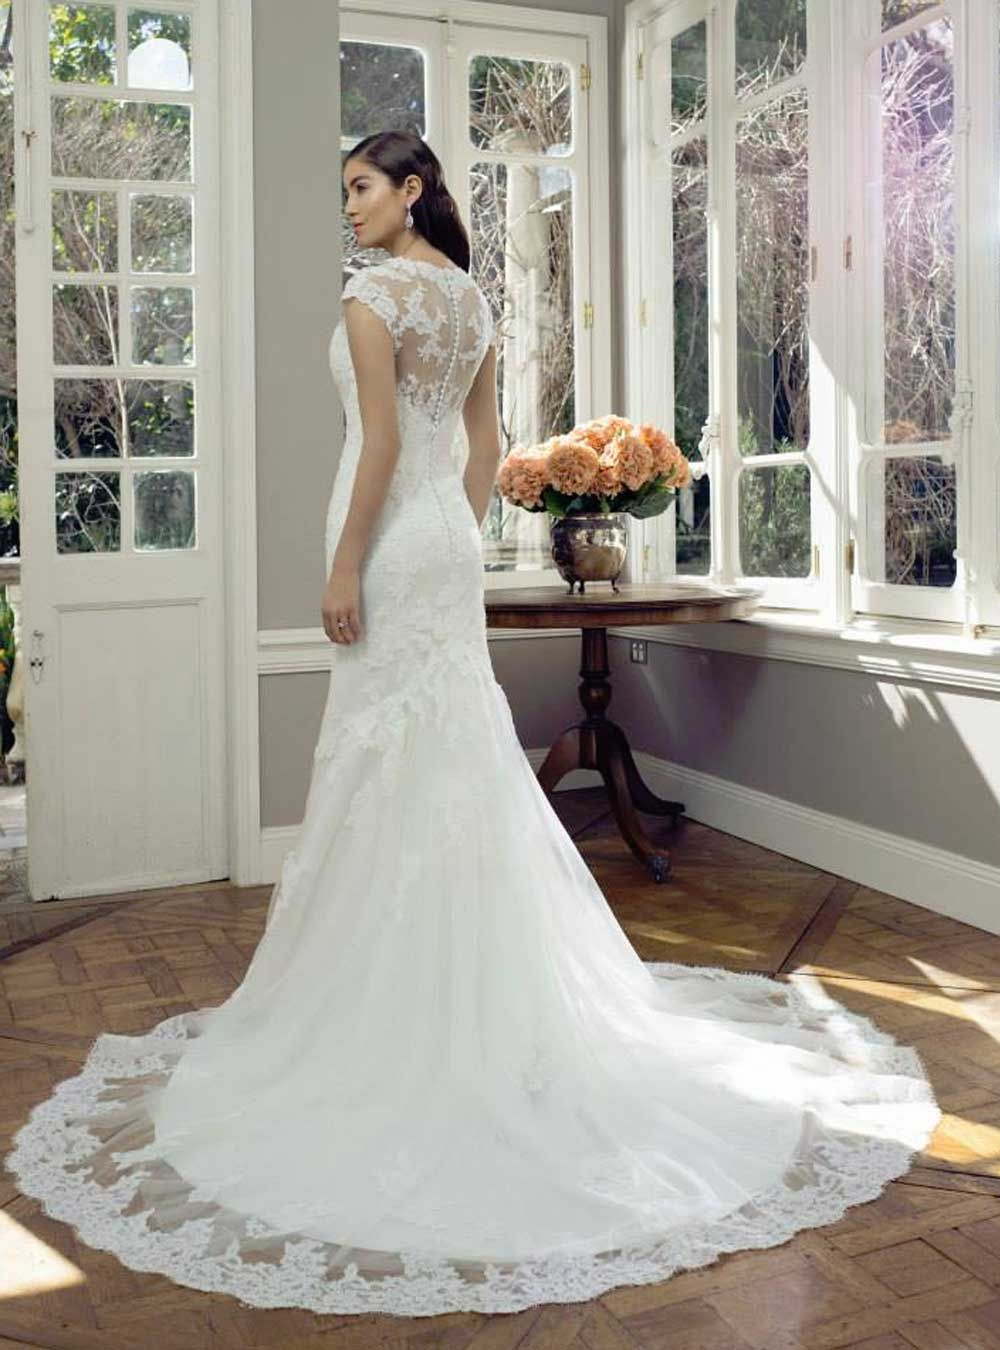 Best Of Wedding Dresses Albany Ny Check more at http://svesty.com ...